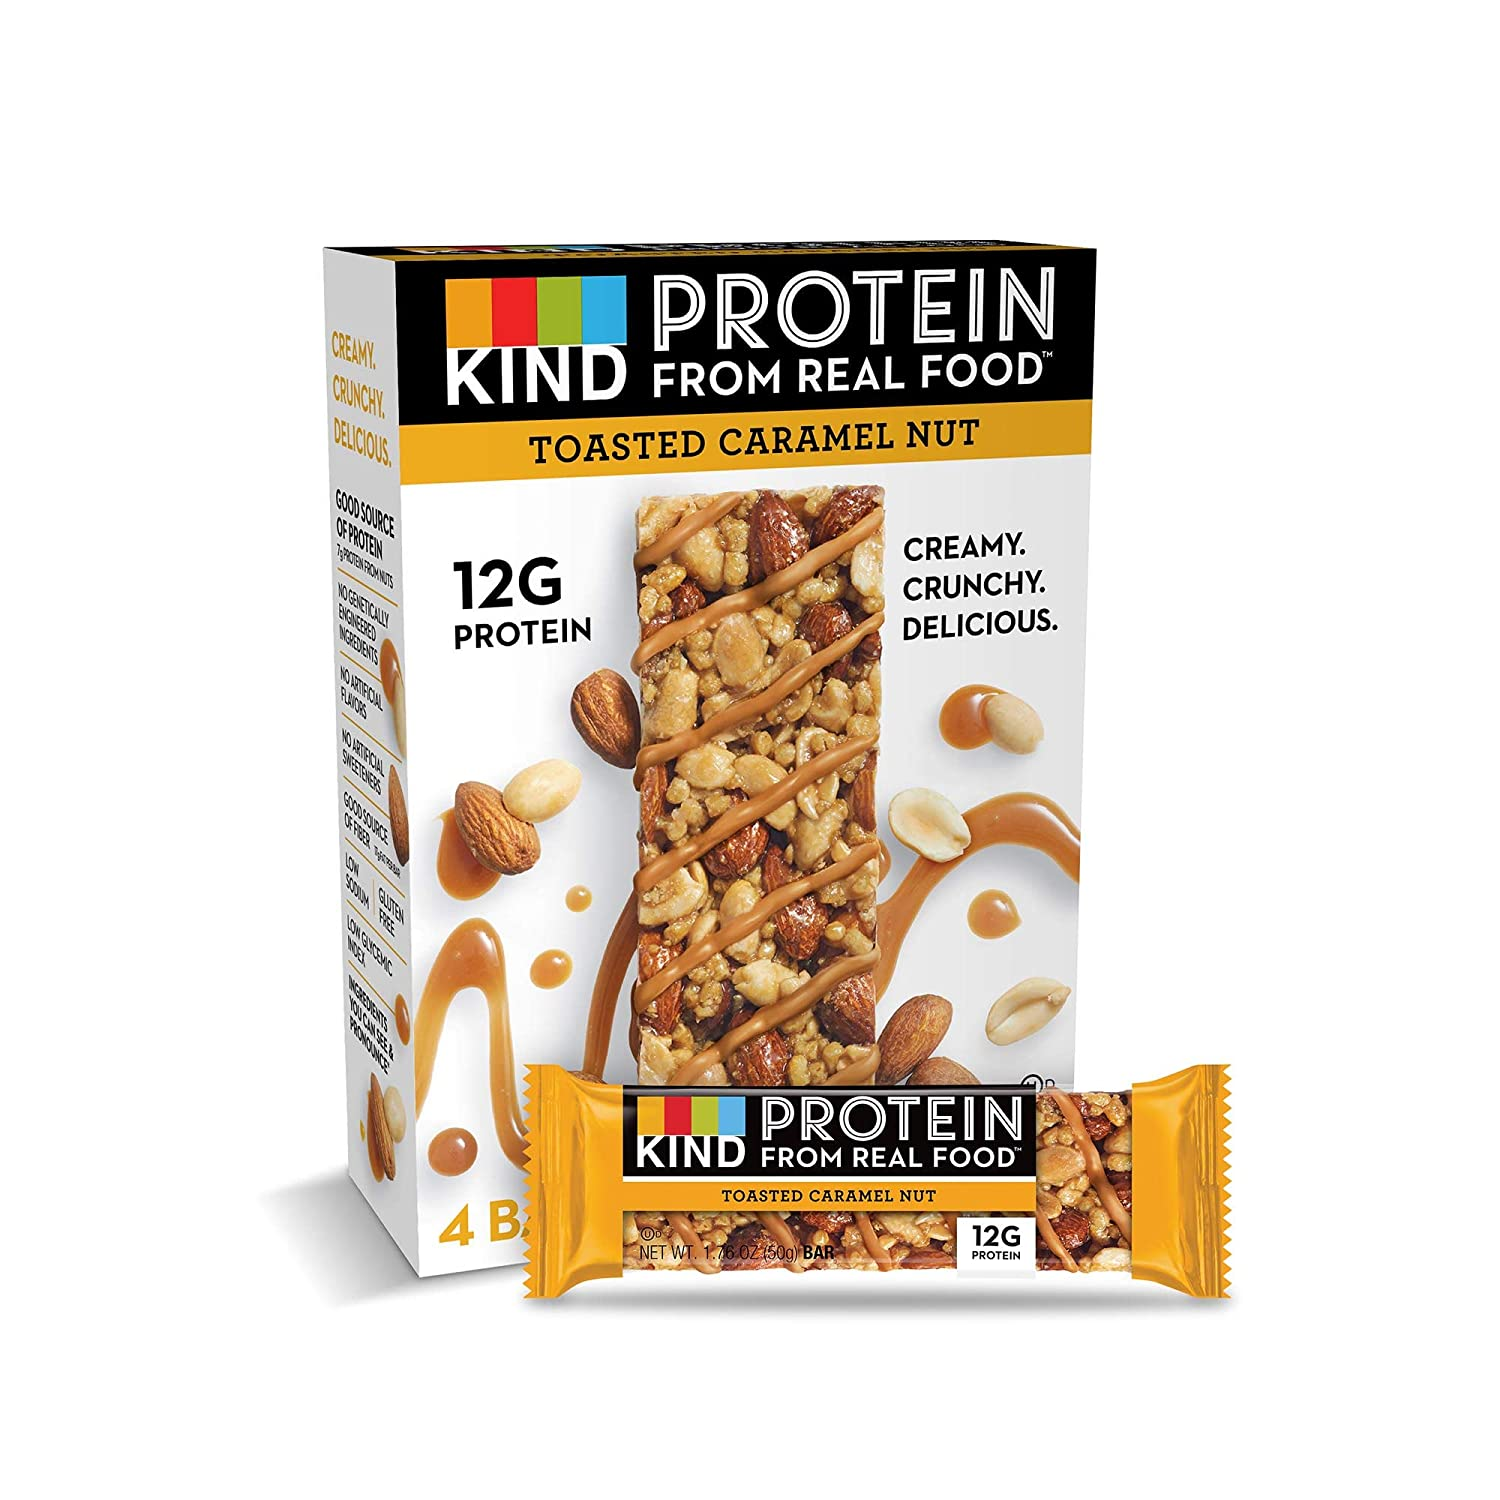 KIND Protein Bars, Toasted Caramel Nut, Gluten Free, 12g Protein,1.76oz, 24 count